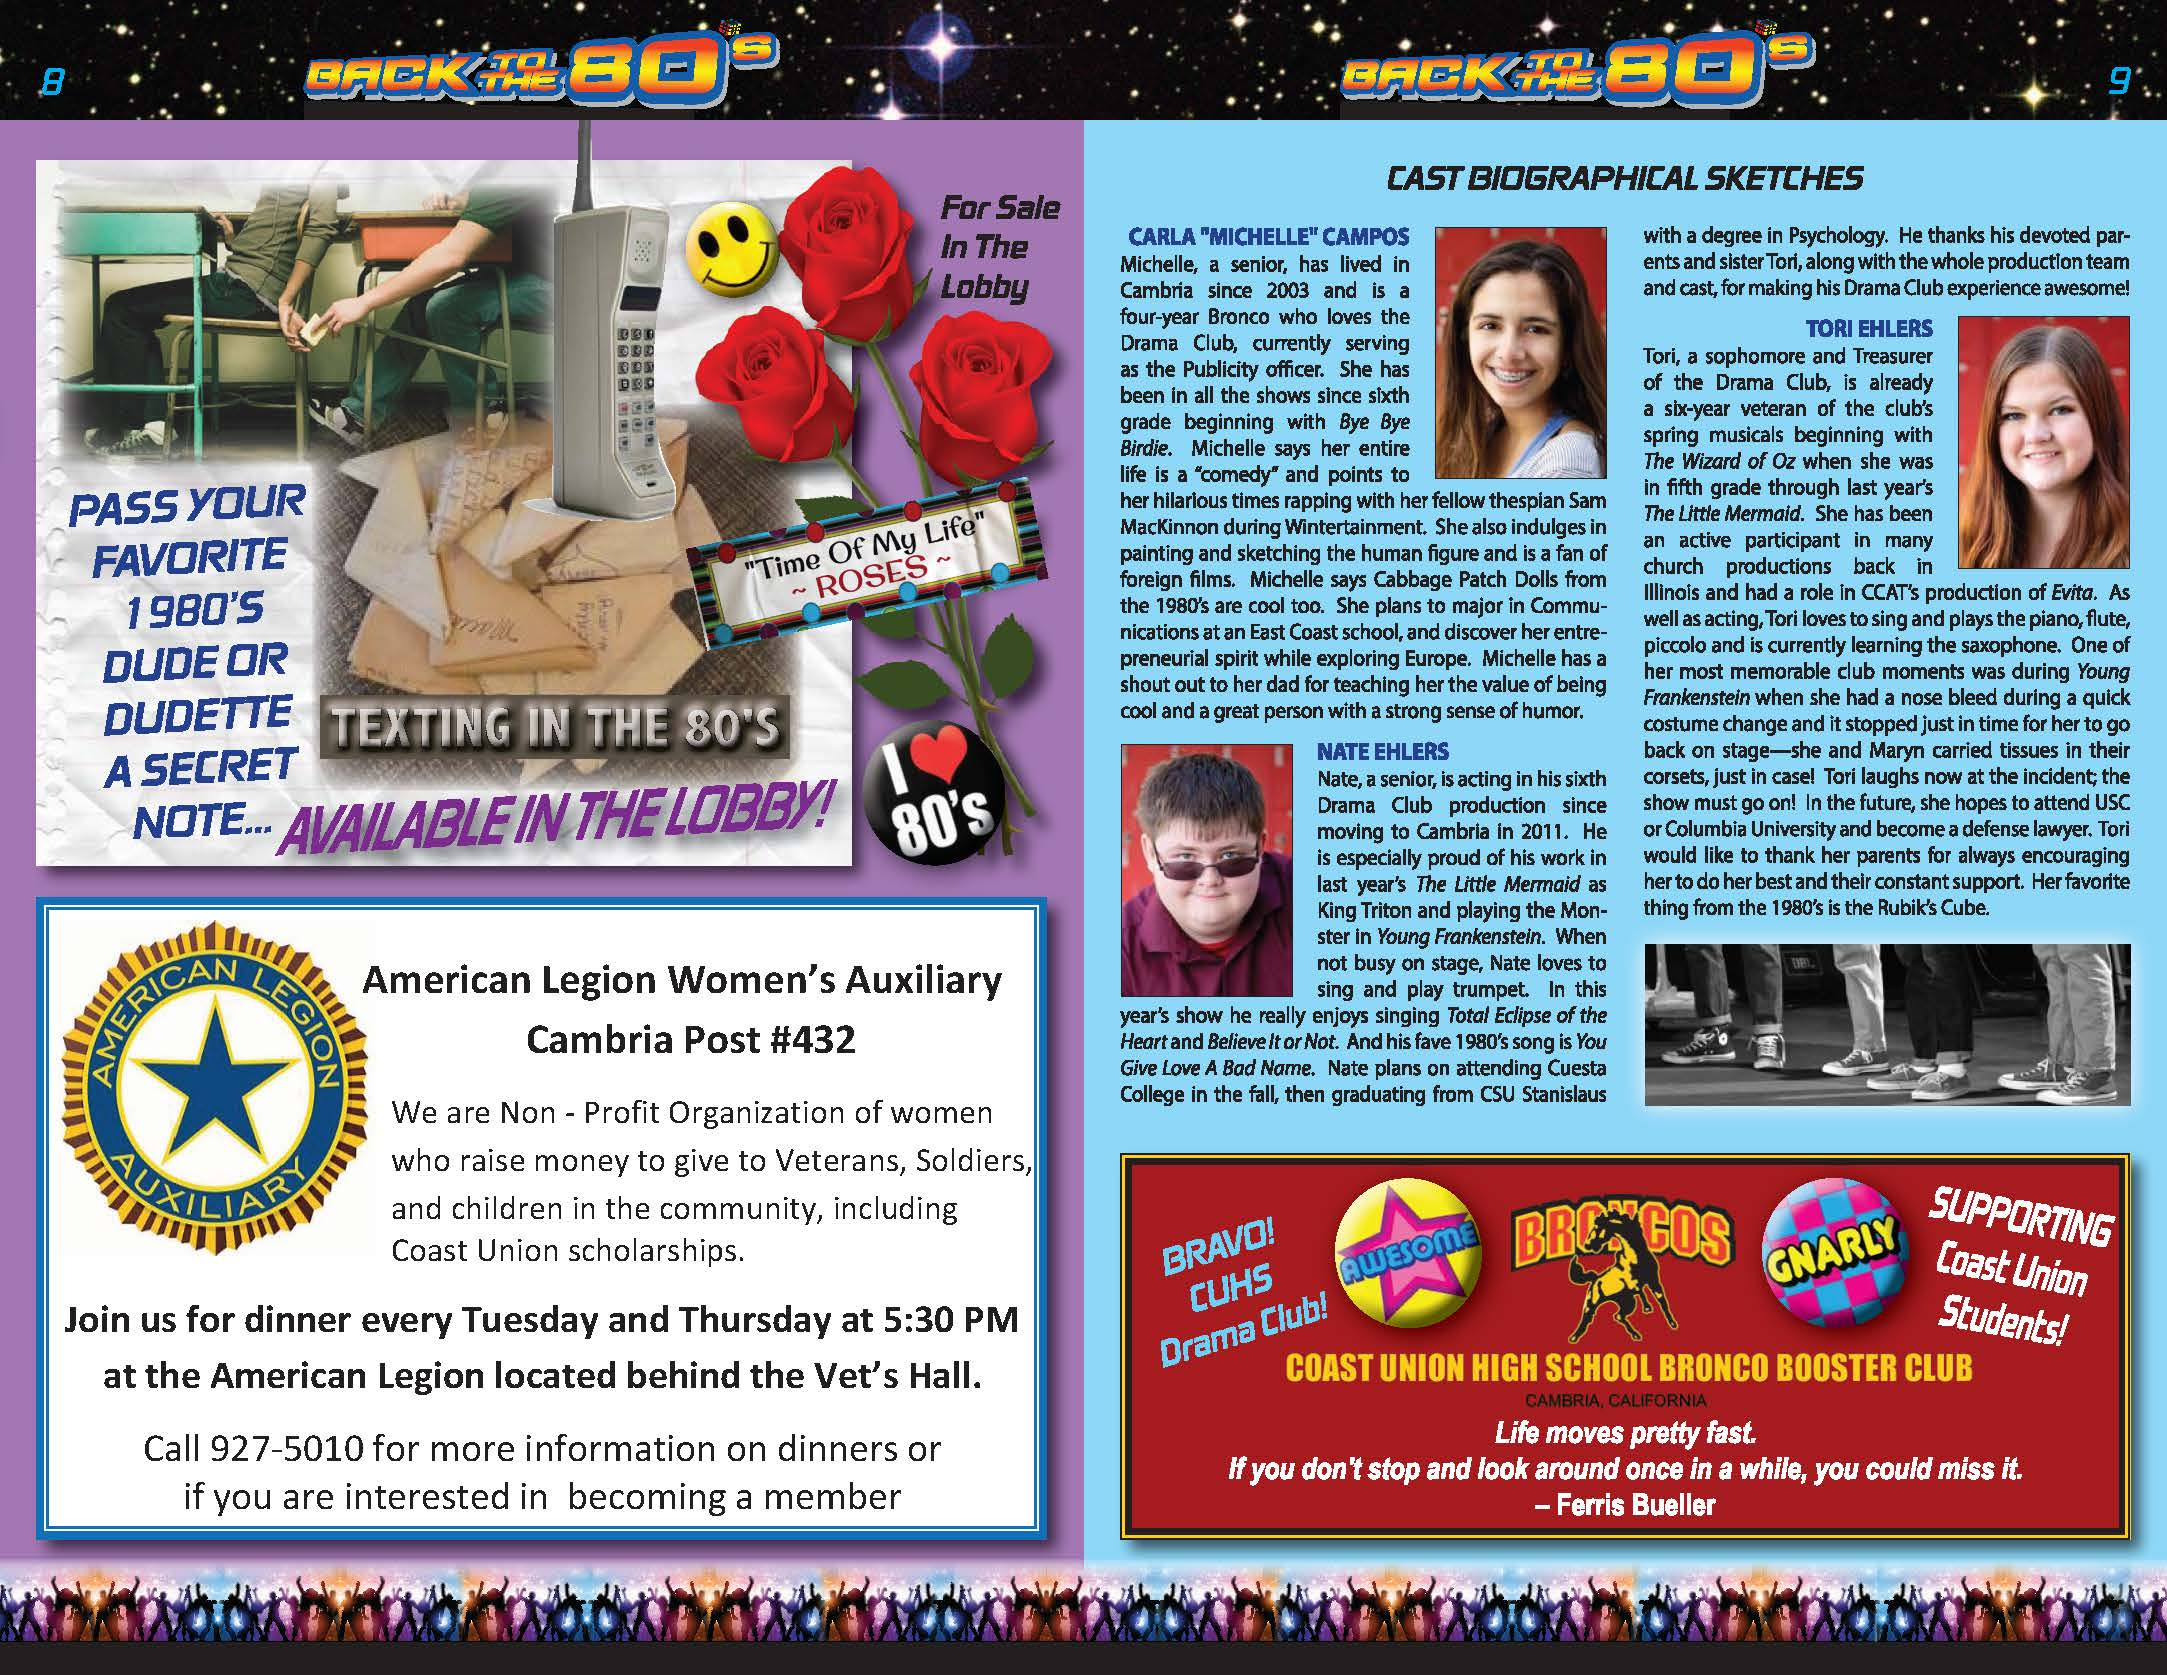 cuhs-drama-back-to-the-80s-program-vweb_reduced_page_5